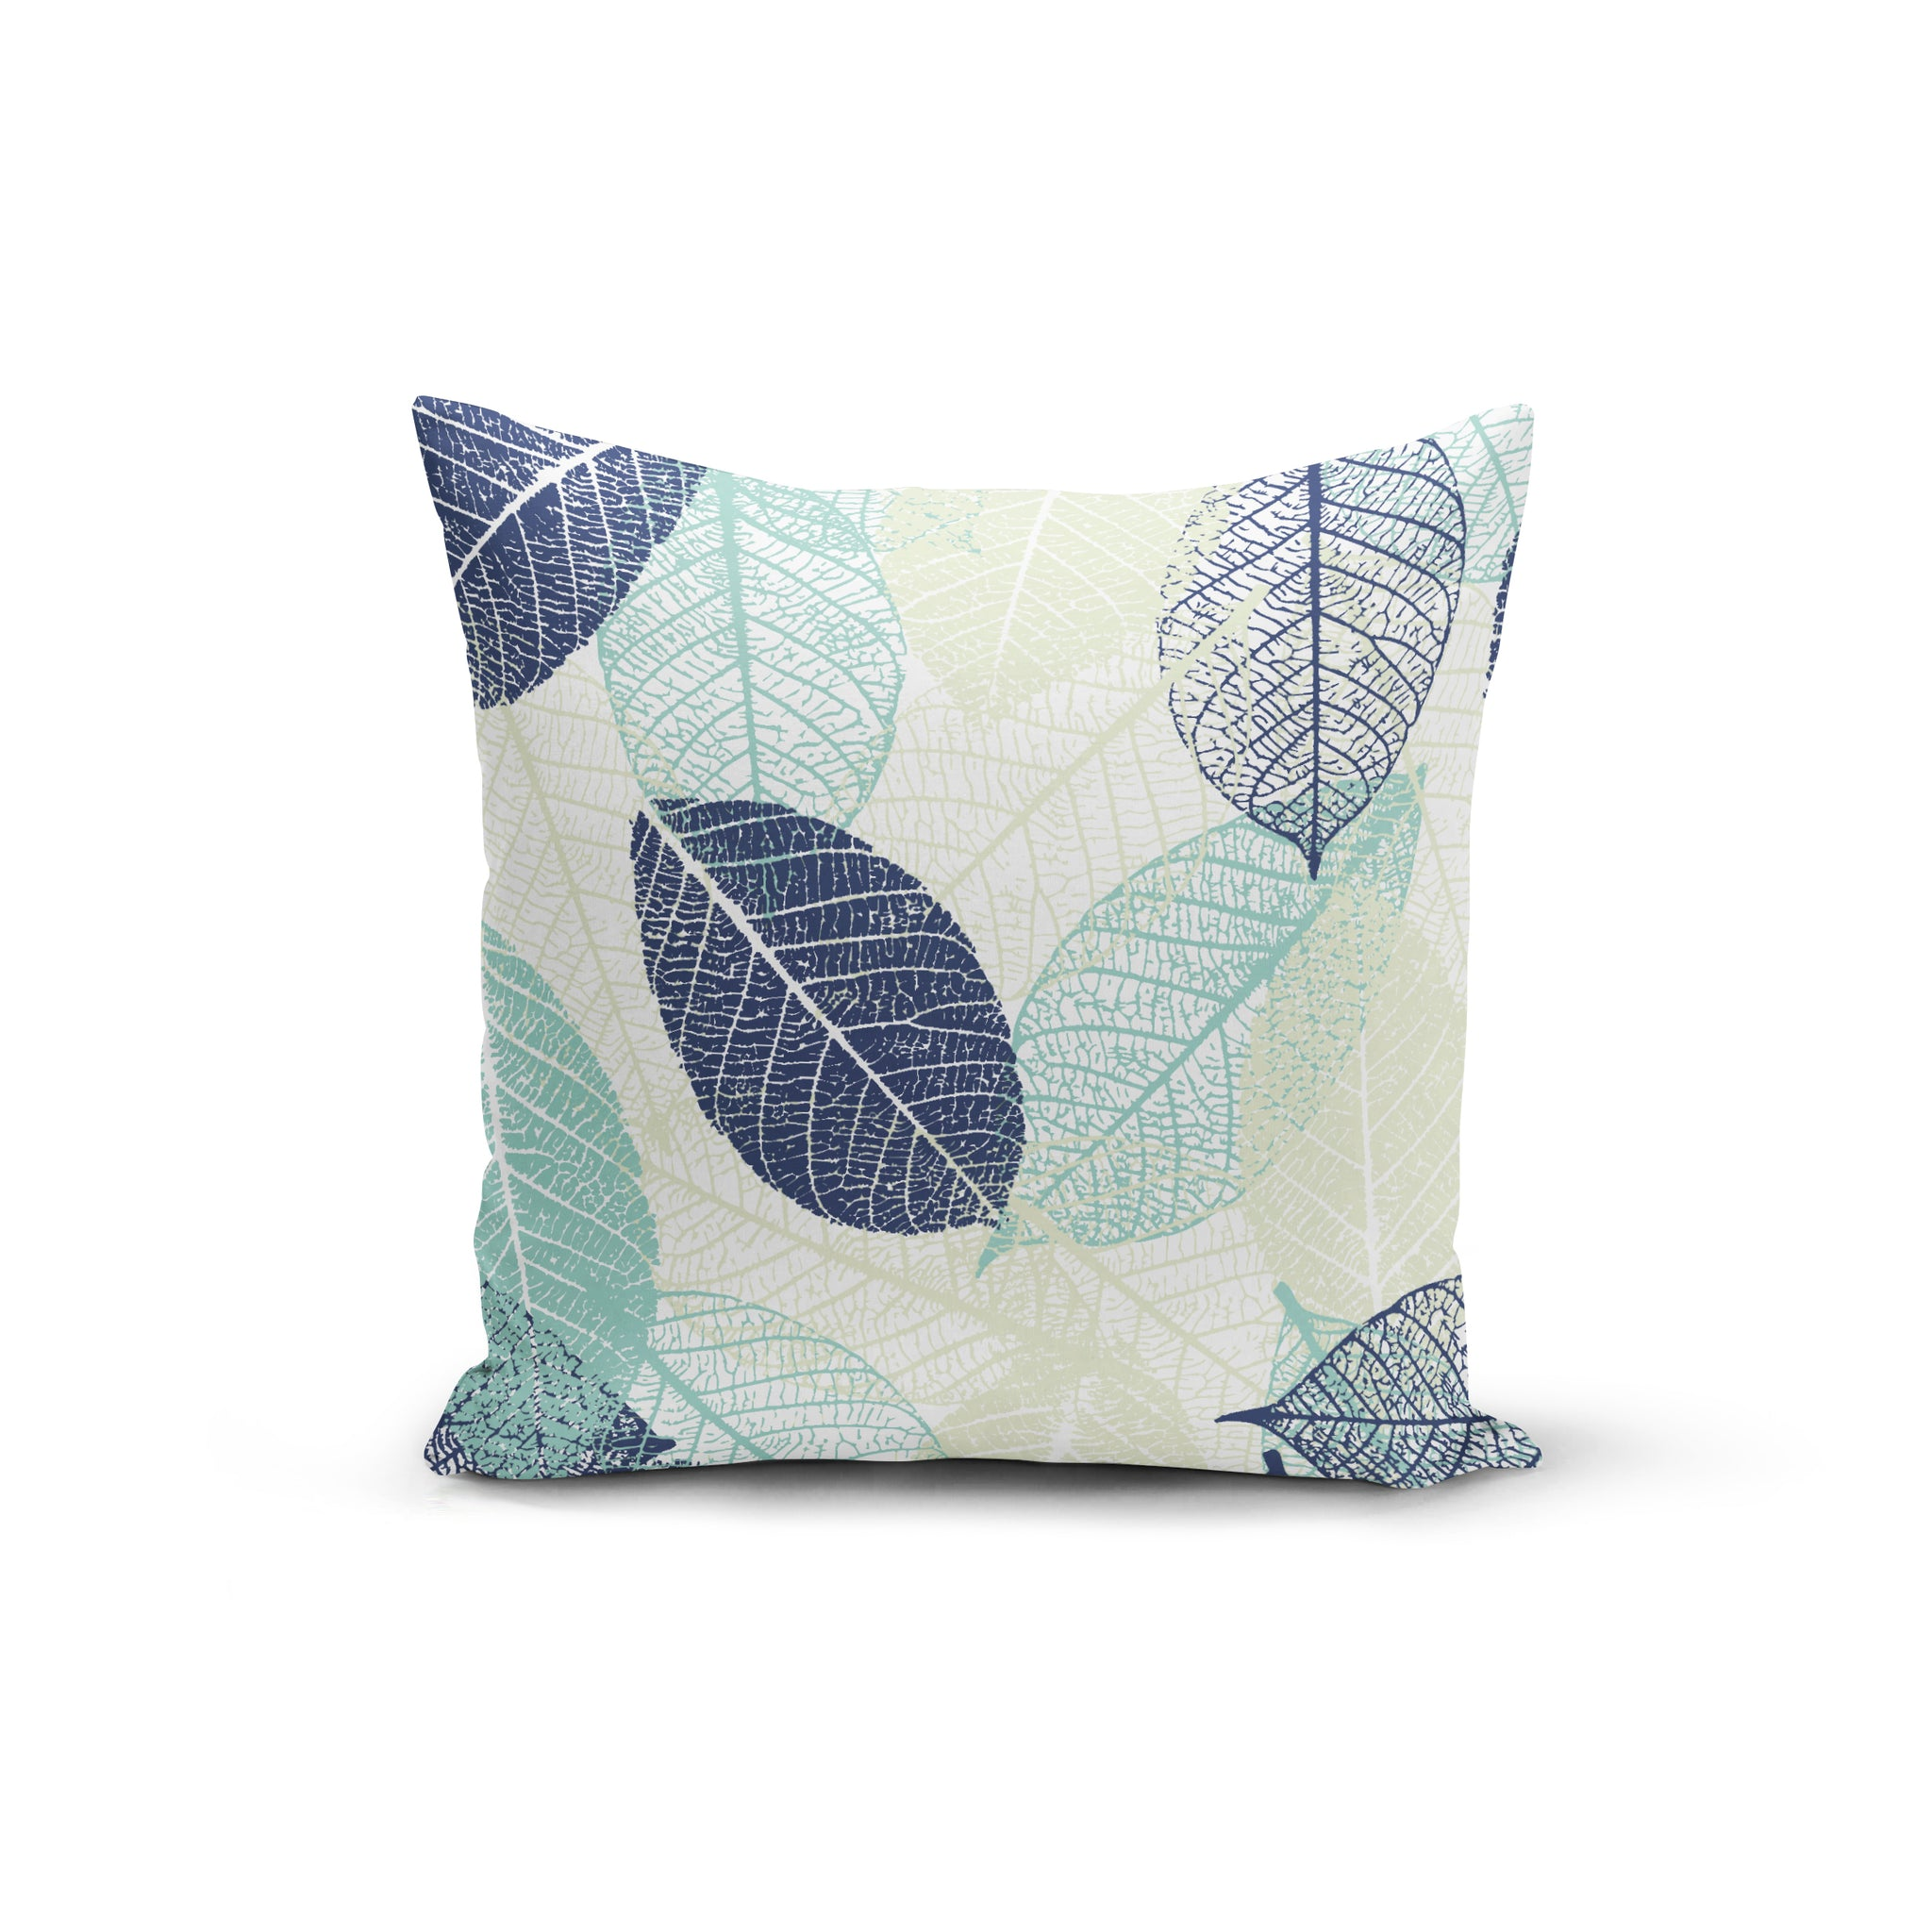 Blue Teal Leaves Throw Pillows